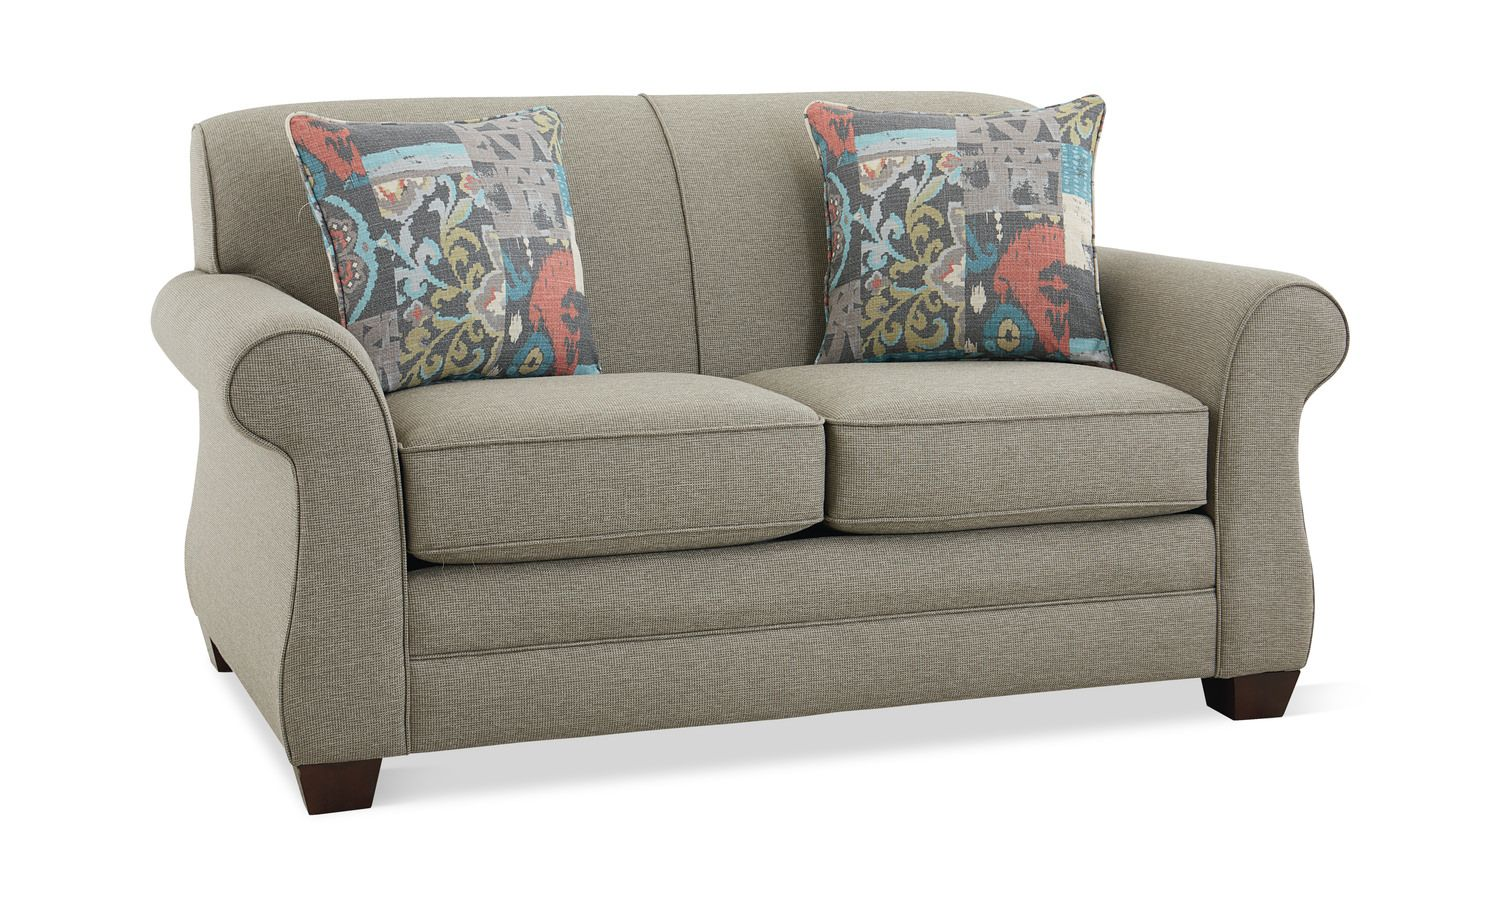 Macleod Loveseat Love Seat Hom Furniture Queen Size Sofa